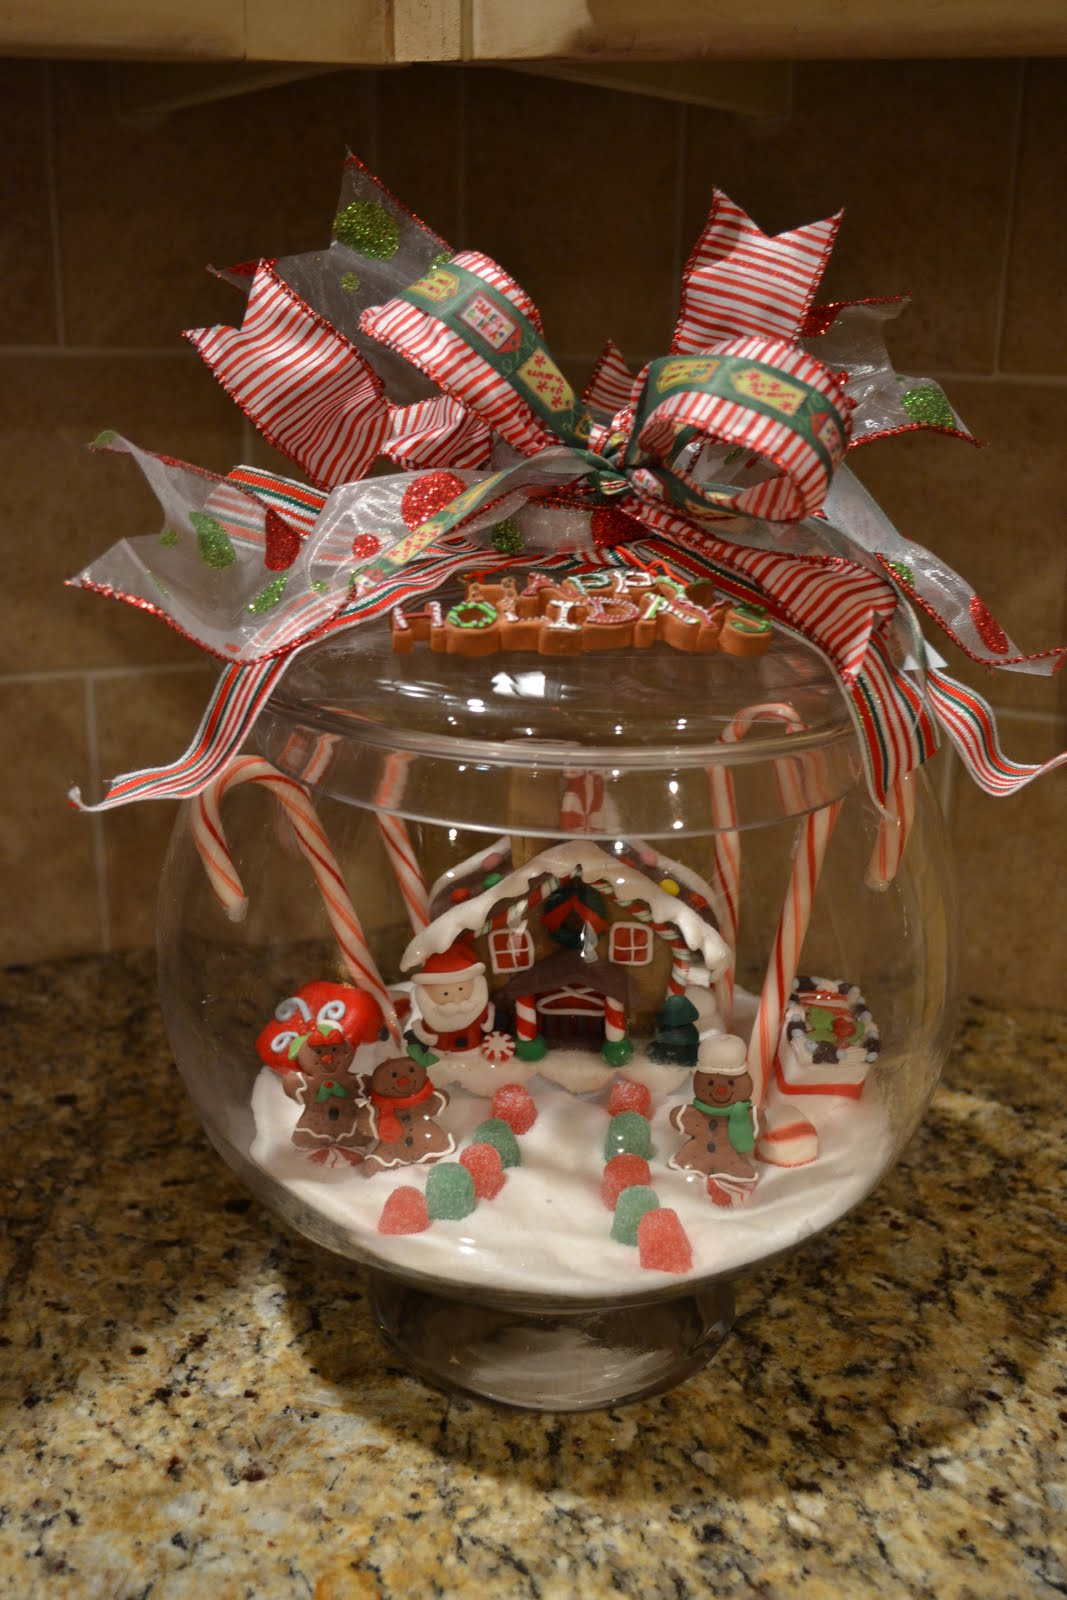 Decorative Ornaments For Living Room: Kristen's Creations: Gingerbread Decorations, Etsy Store